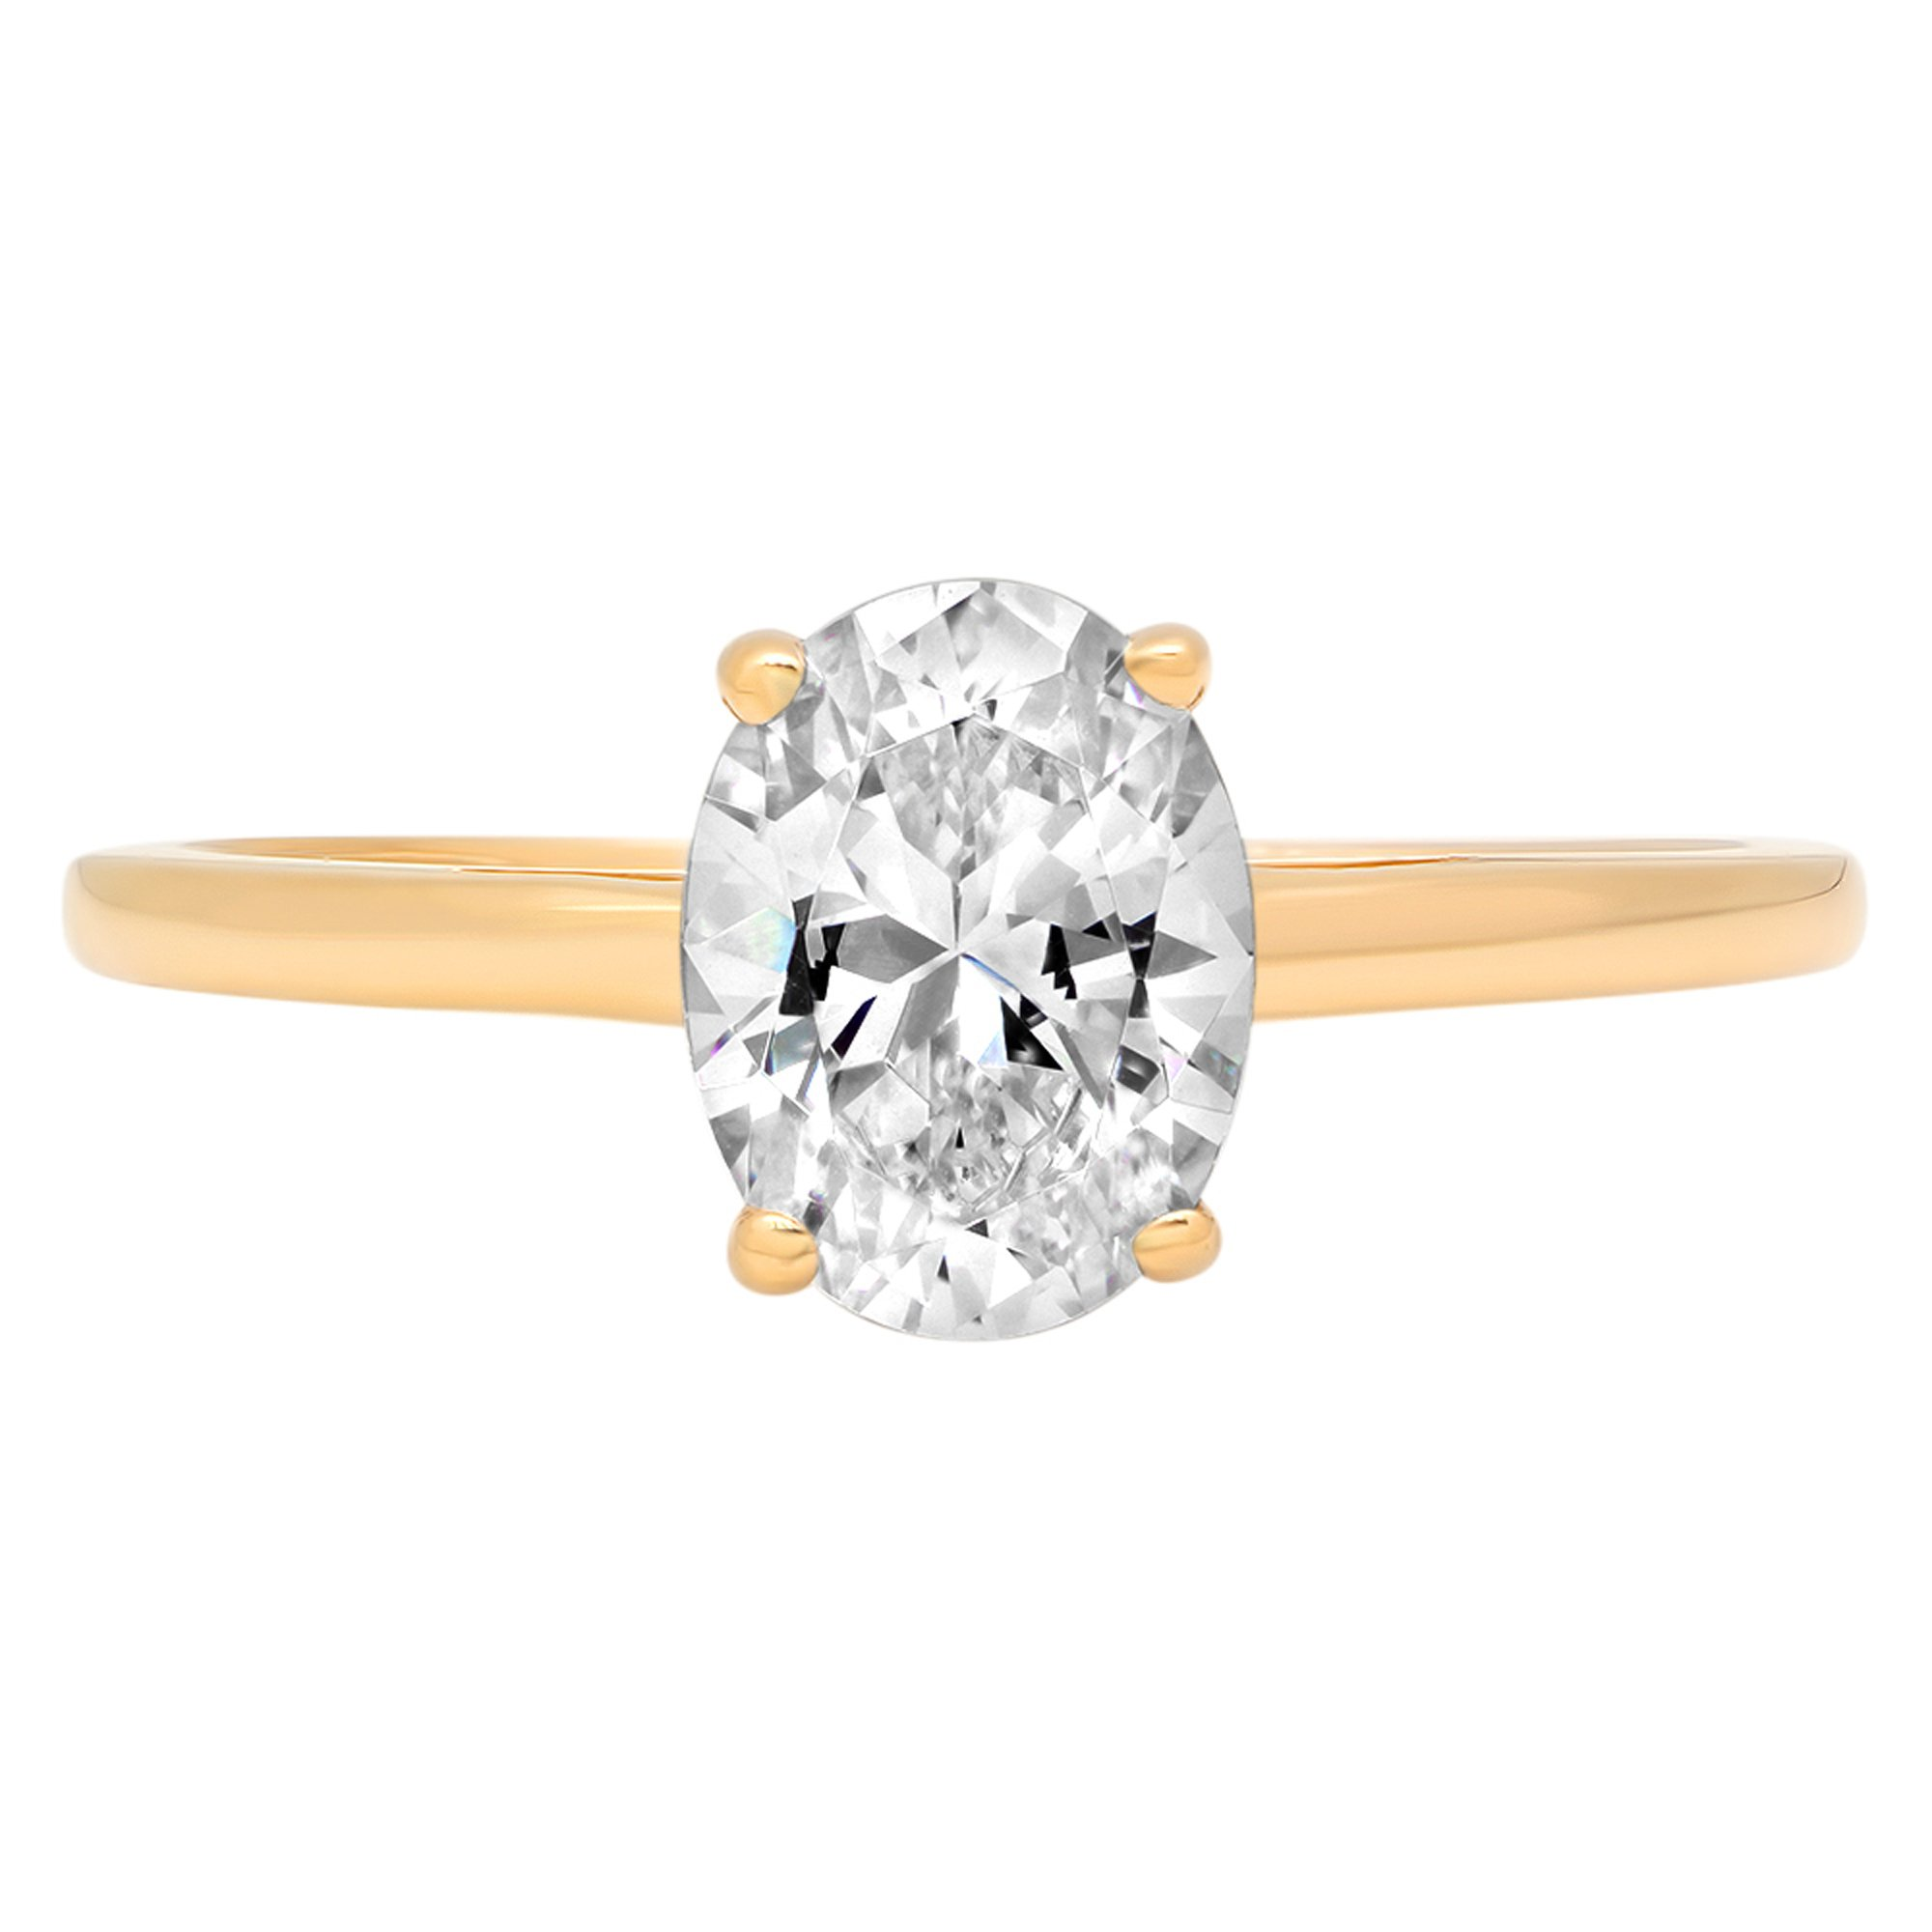 Clara Pucci 1.45 ct Brilliant Oval Cut Solitaire Engagement weddind Bridal Promise Ring Band in Solid 14k Yellow Gold, Size 5.75 by Clara Pucci